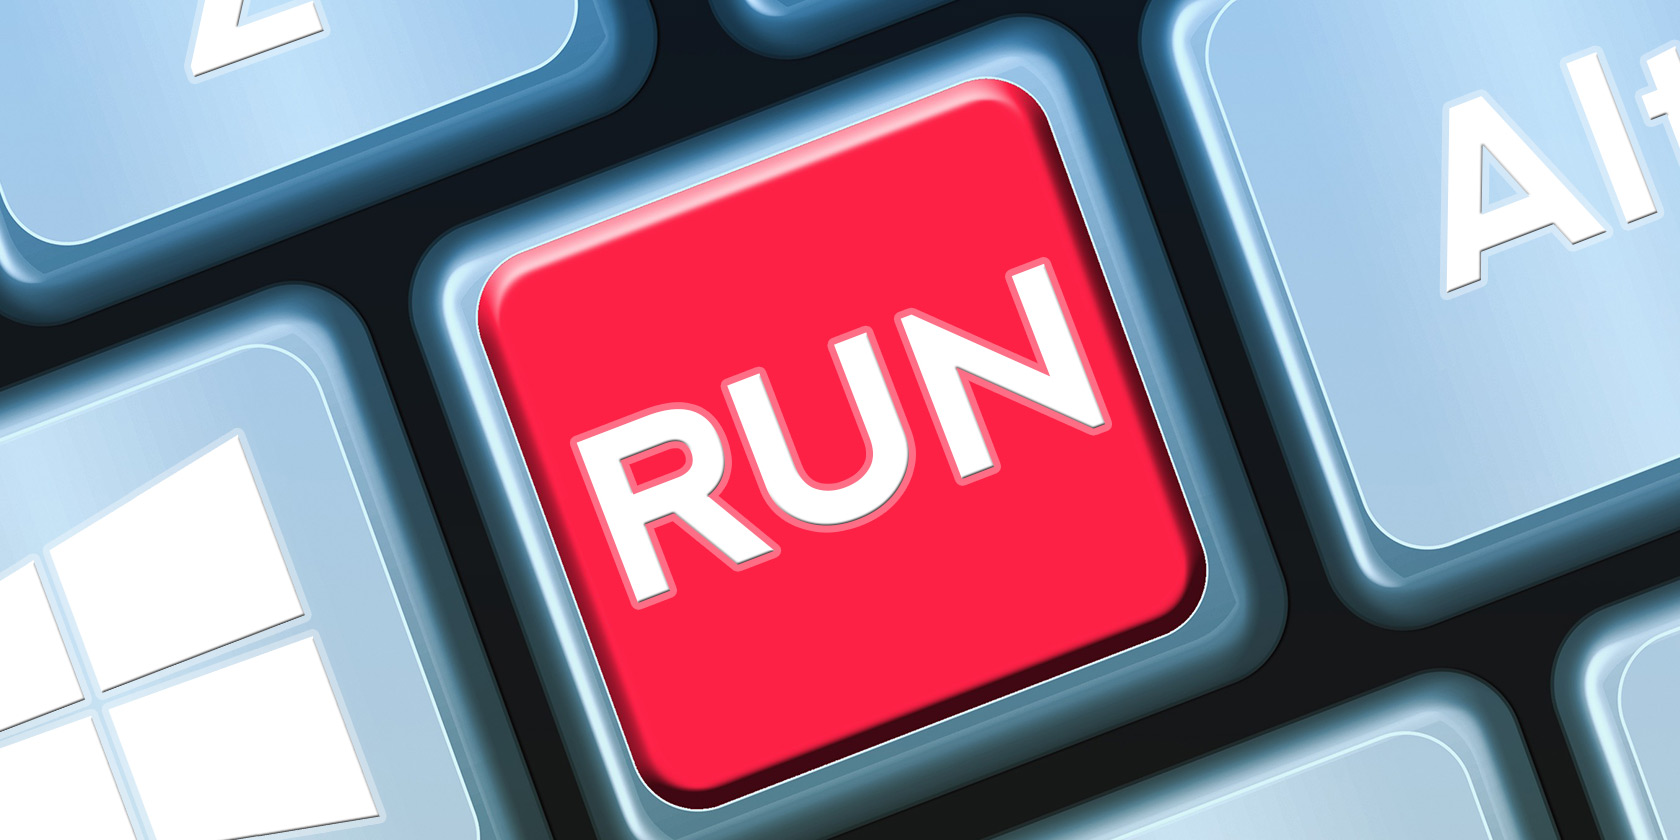 Close-up of Run button/key